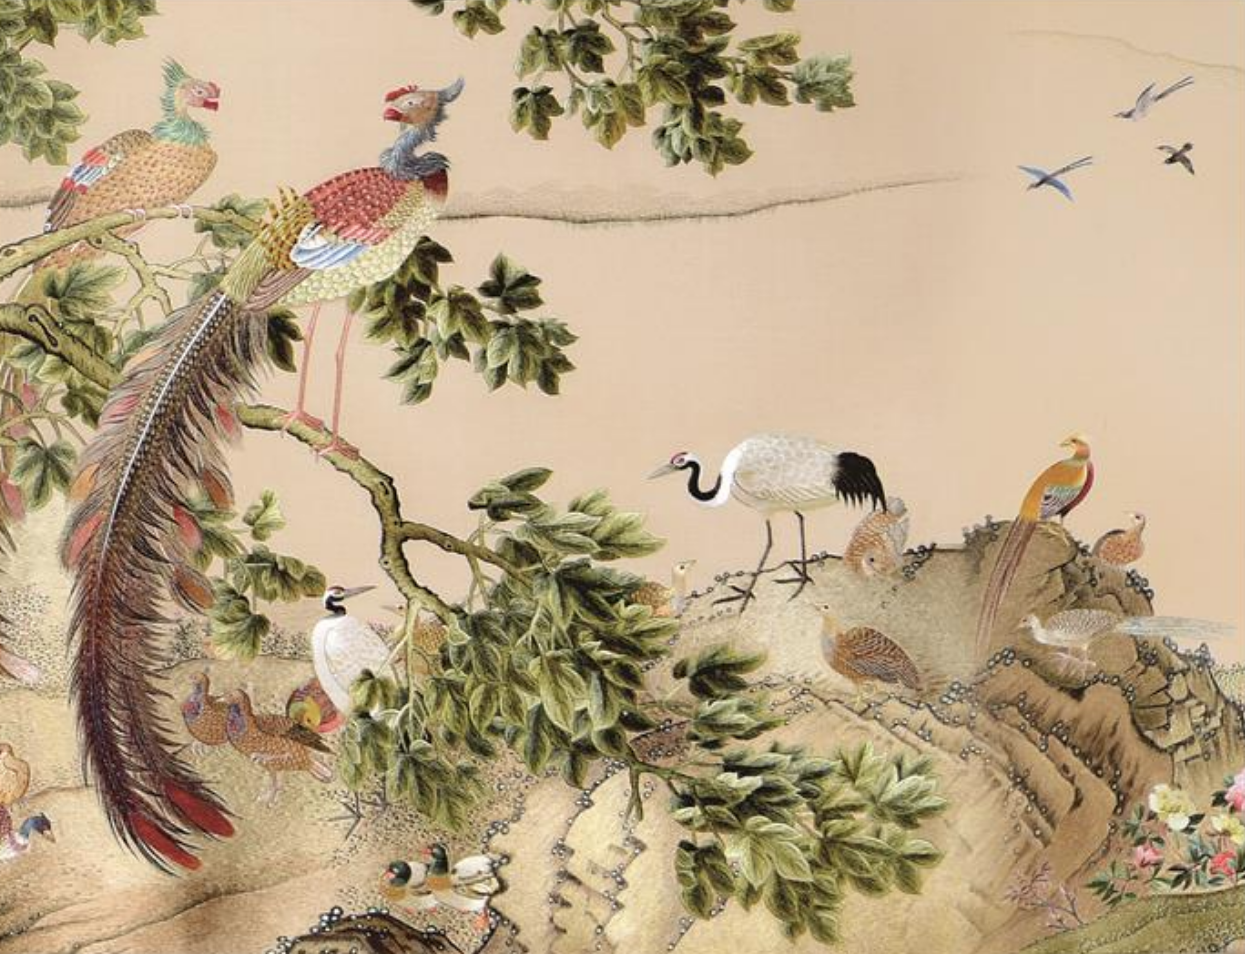 China Shen Embroidery Art Exhibition Art Macao 2021